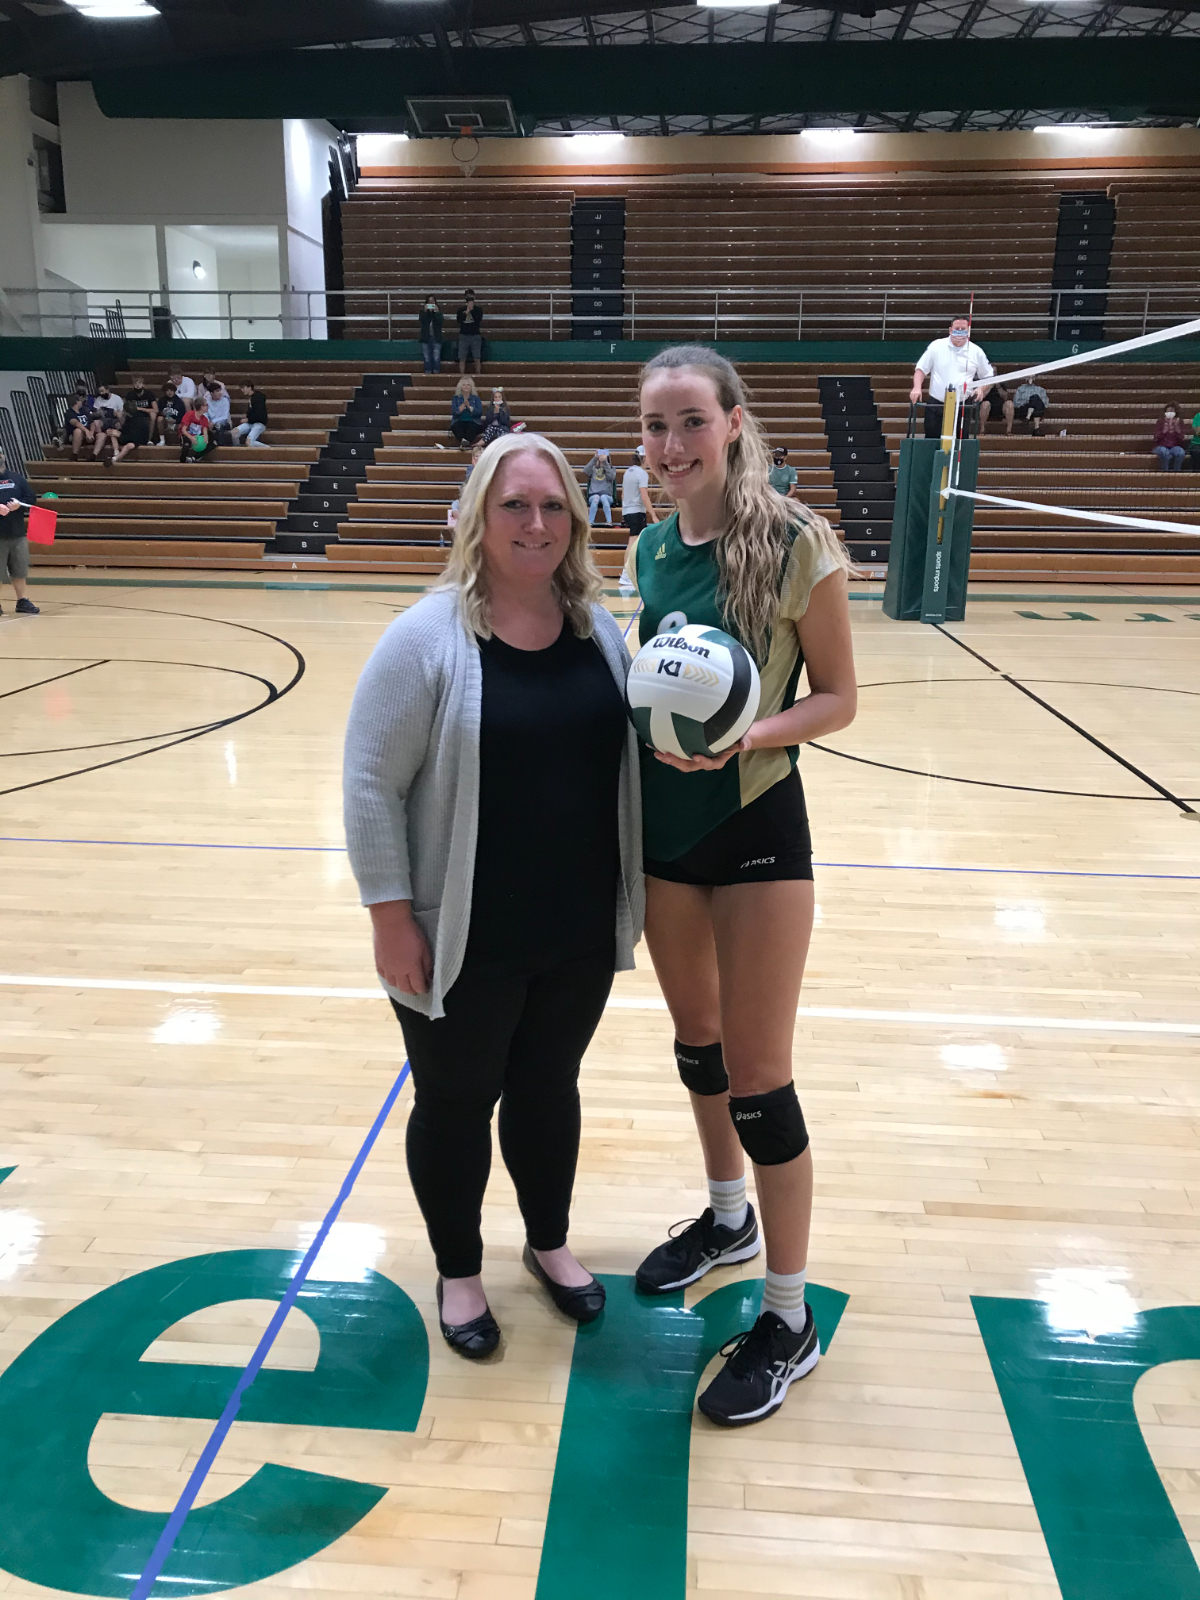 Loralei Evans Gets Her 1,000th Kill!